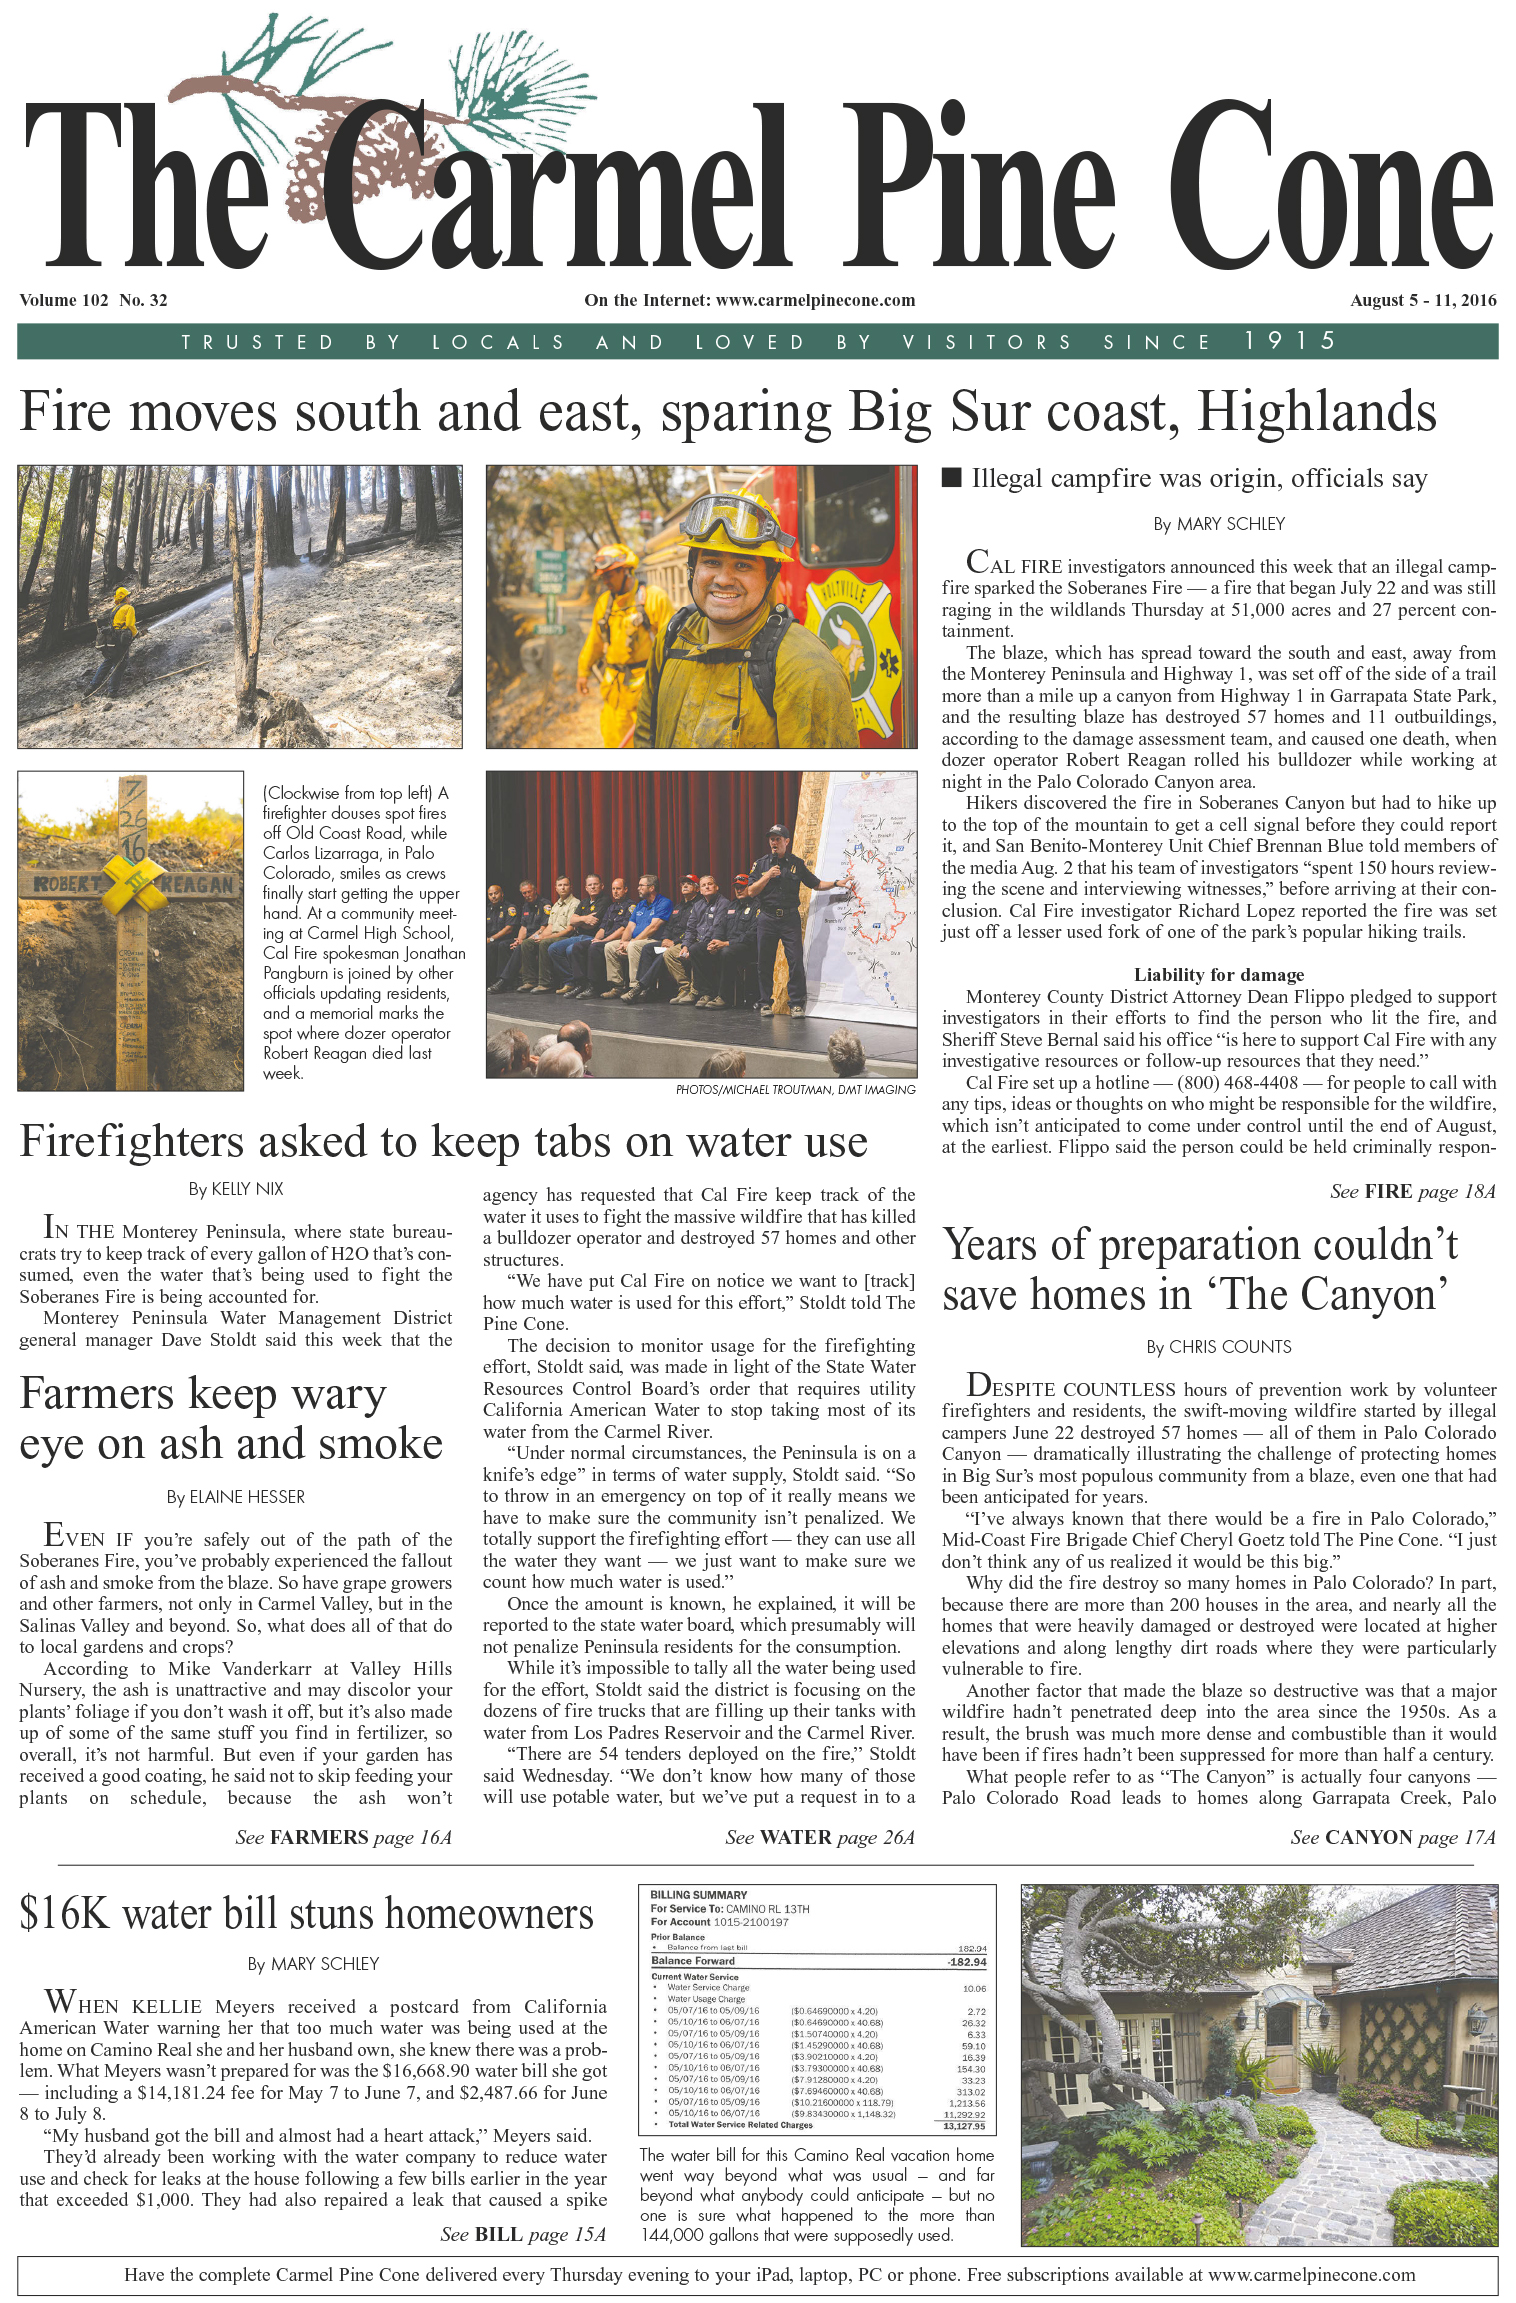 The August 5, 2016, front page of The Carmel Pine                 Cone